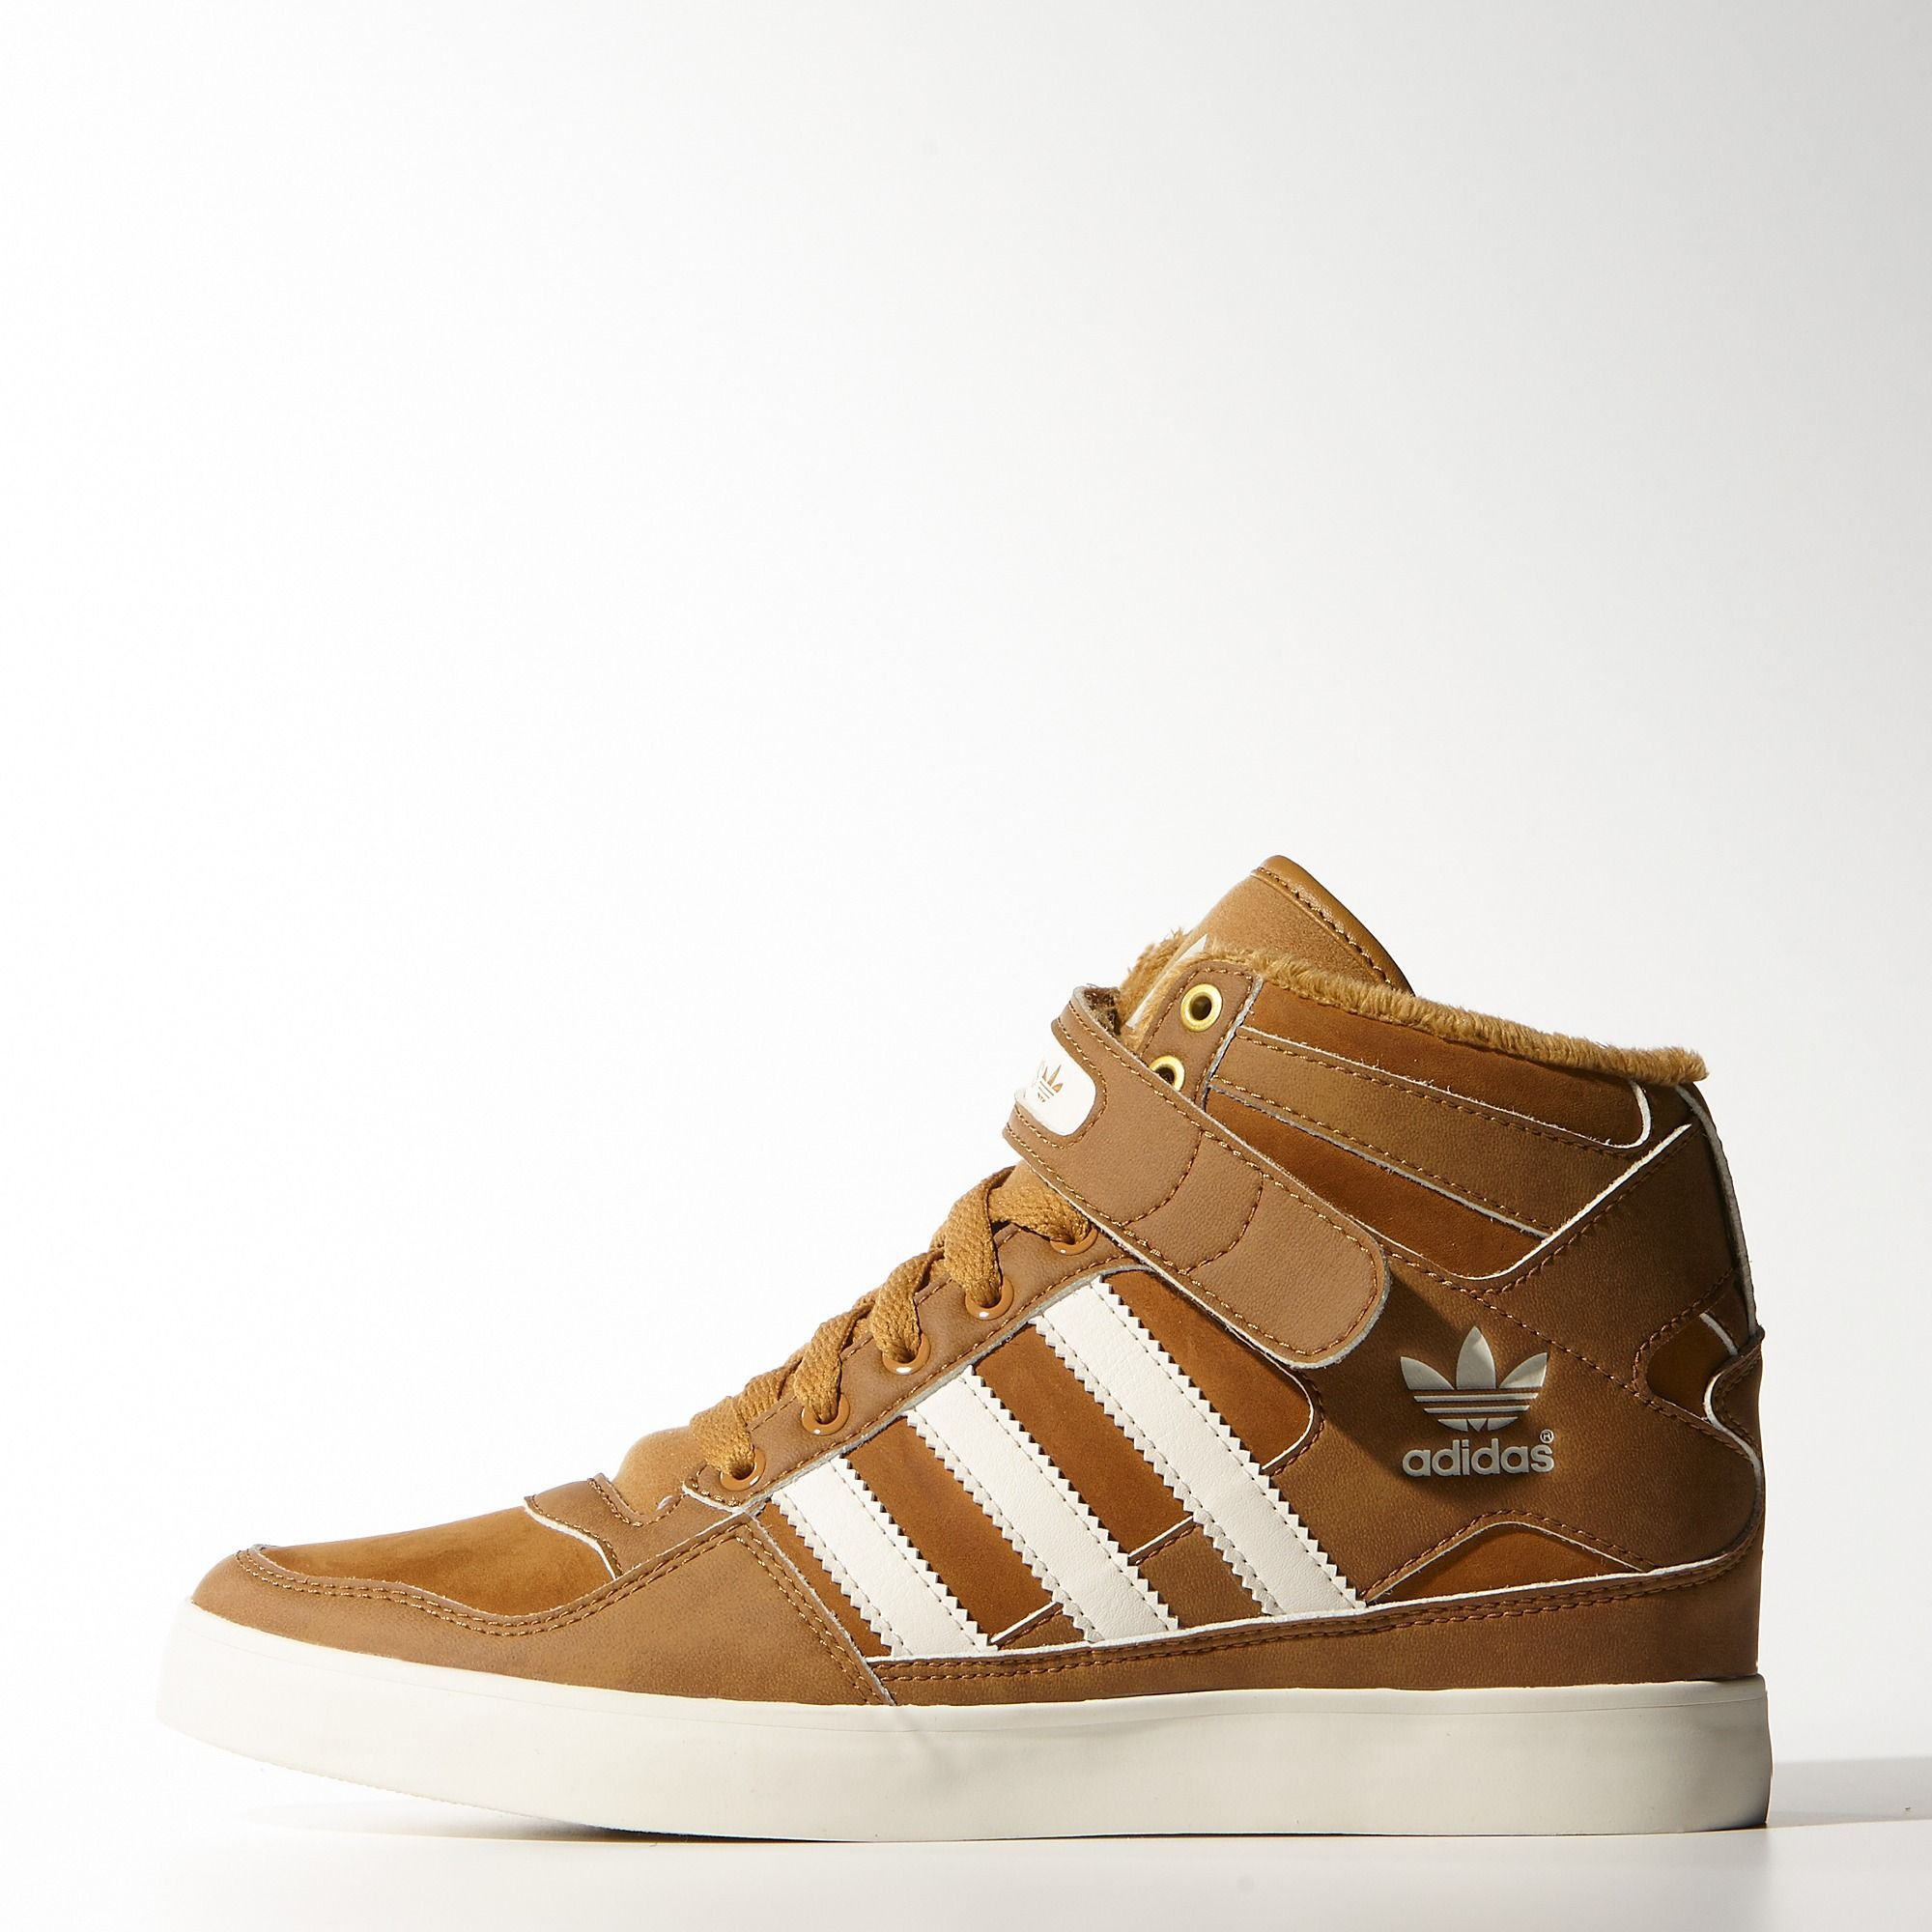 adidas - Forum Up Shoes Size  7  5d52674a8c